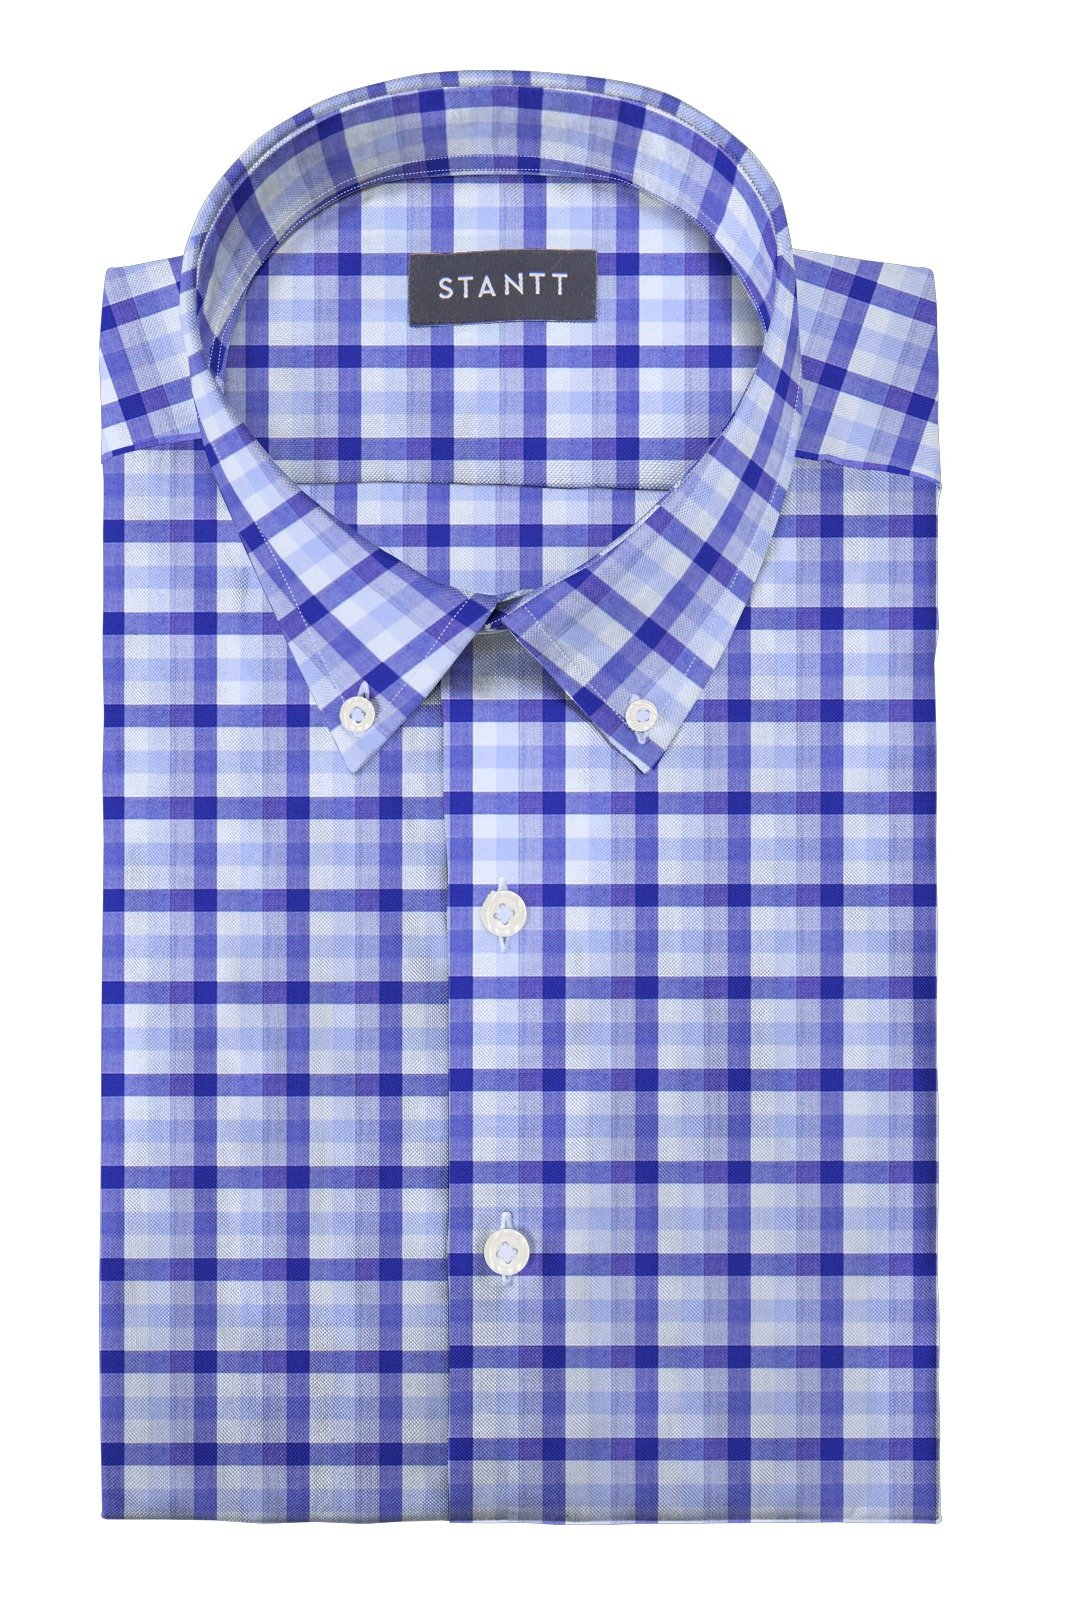 Blue Multi Check: Button-Down Collar, Barrel Cuff